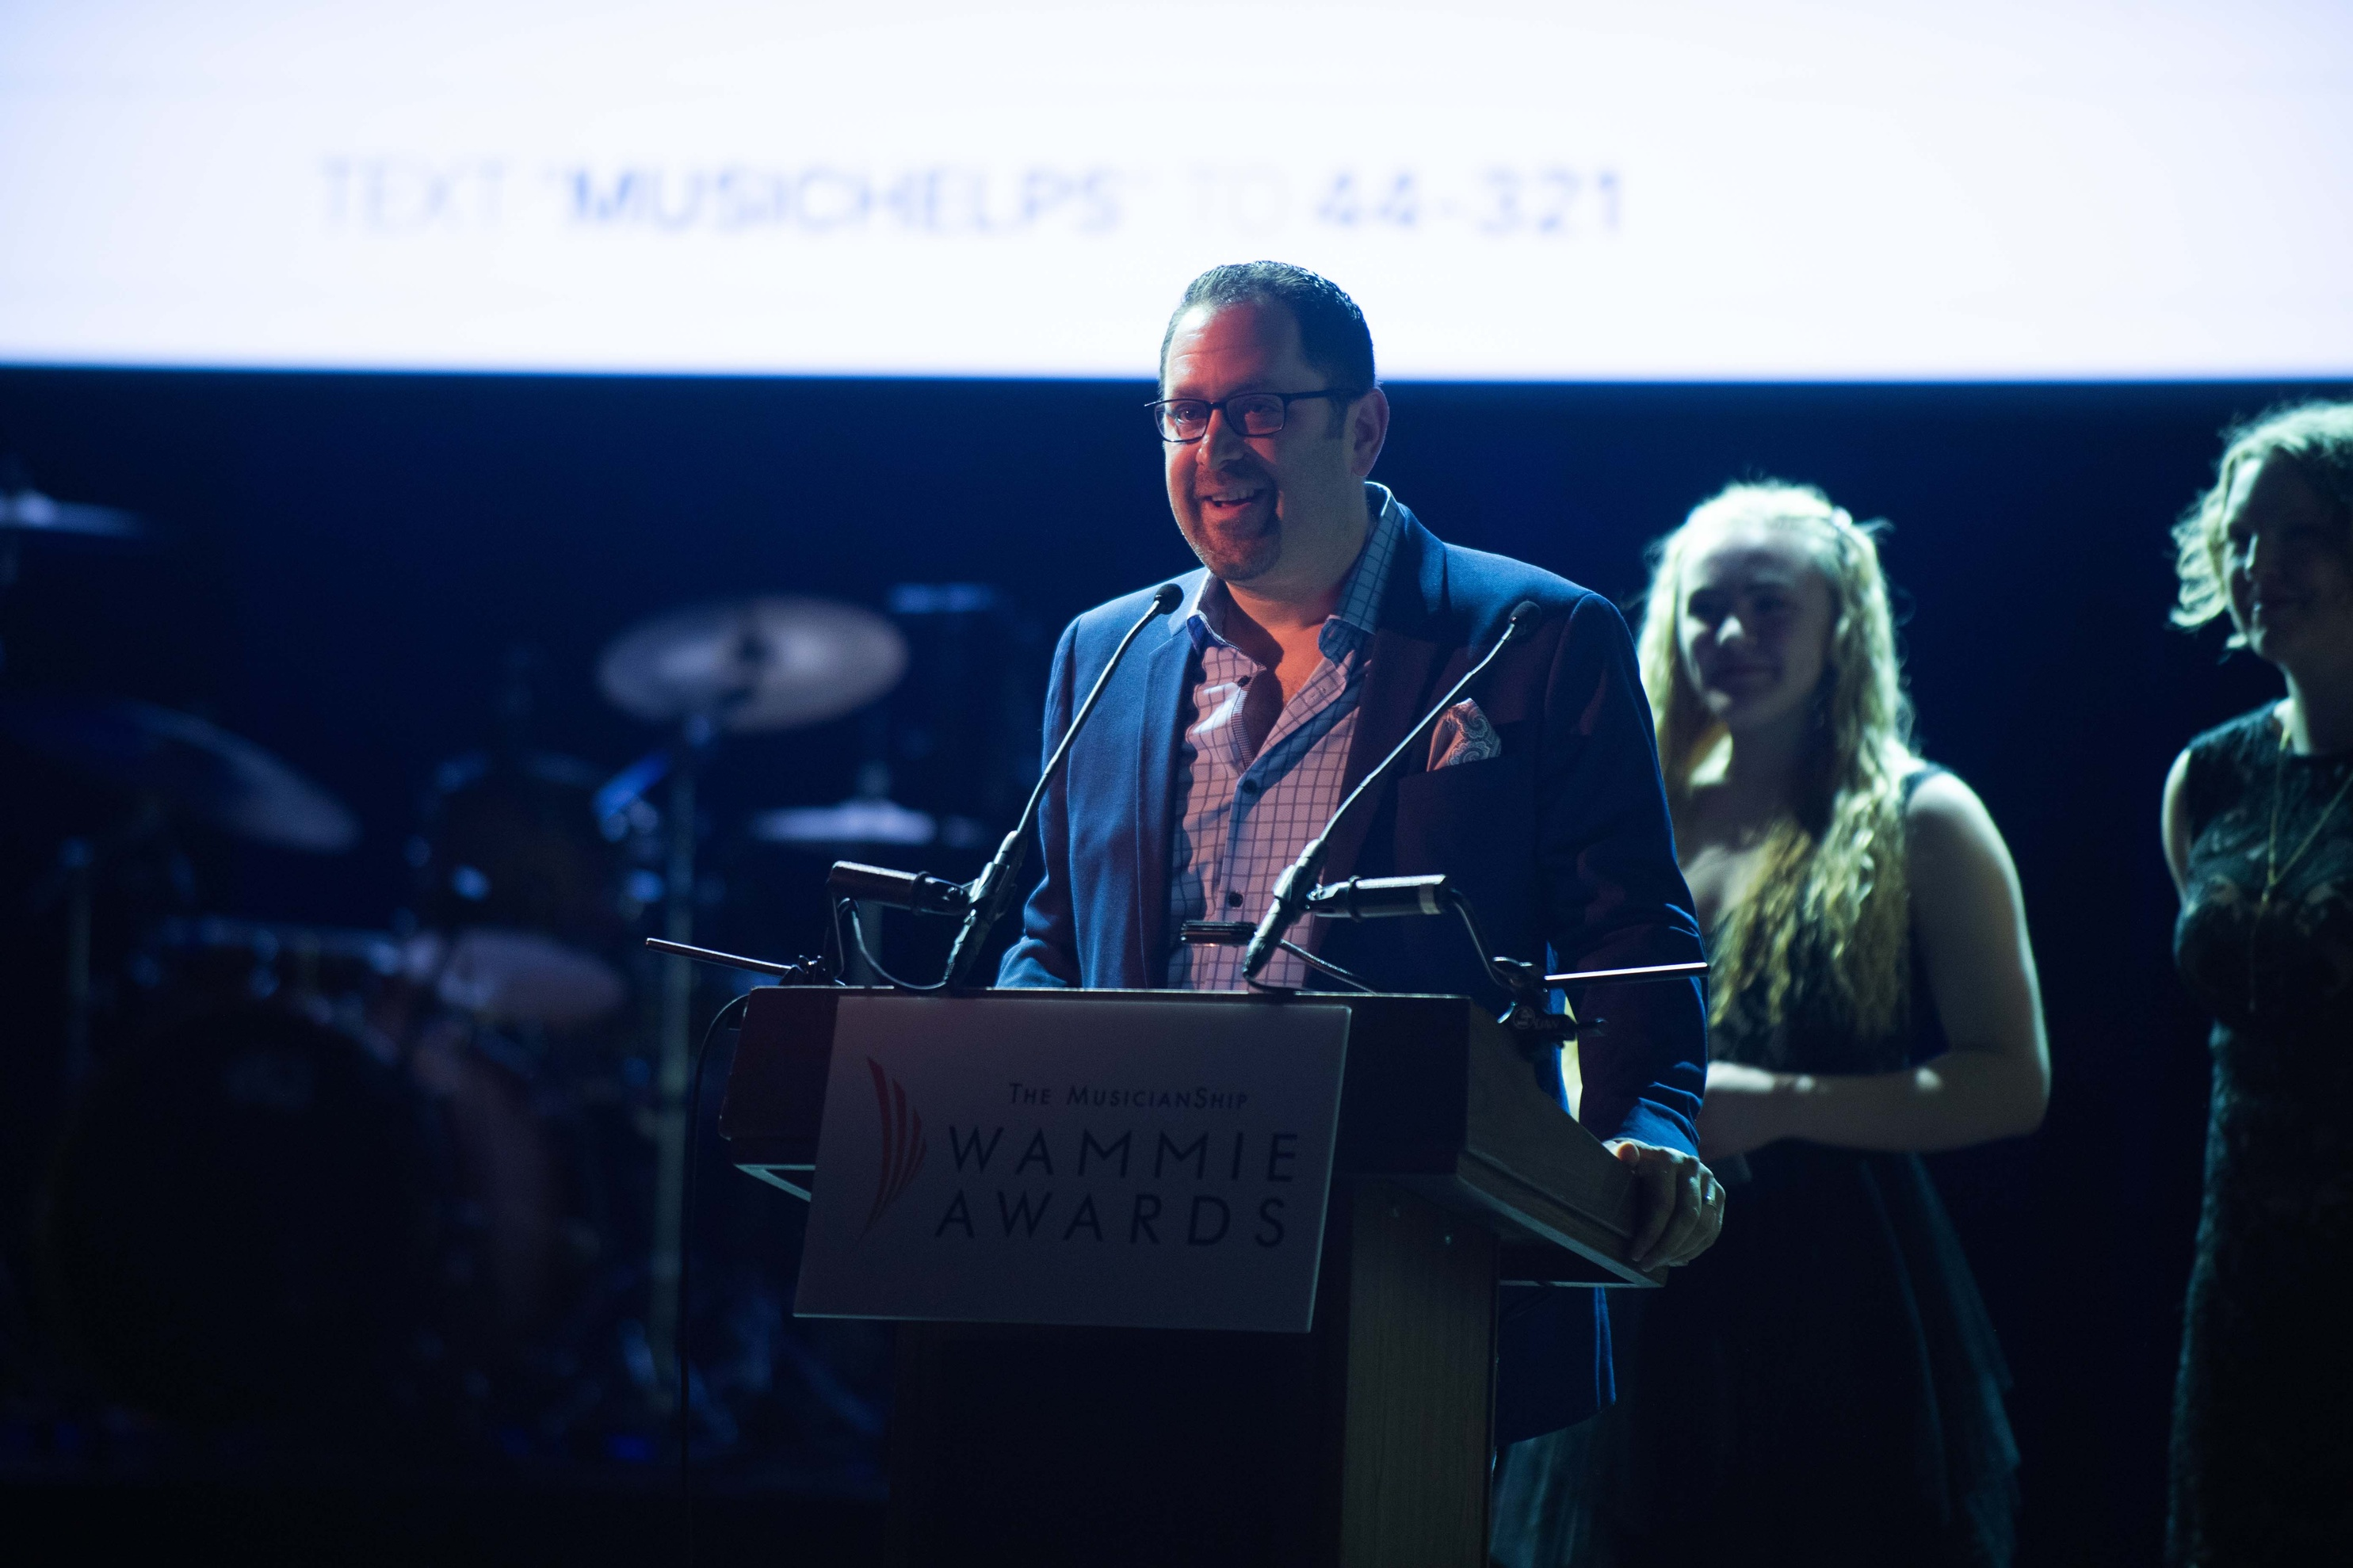 Dave Mallen Accepting WAMMIE Award - Audio Engineering Annandale by Innovation Station Music